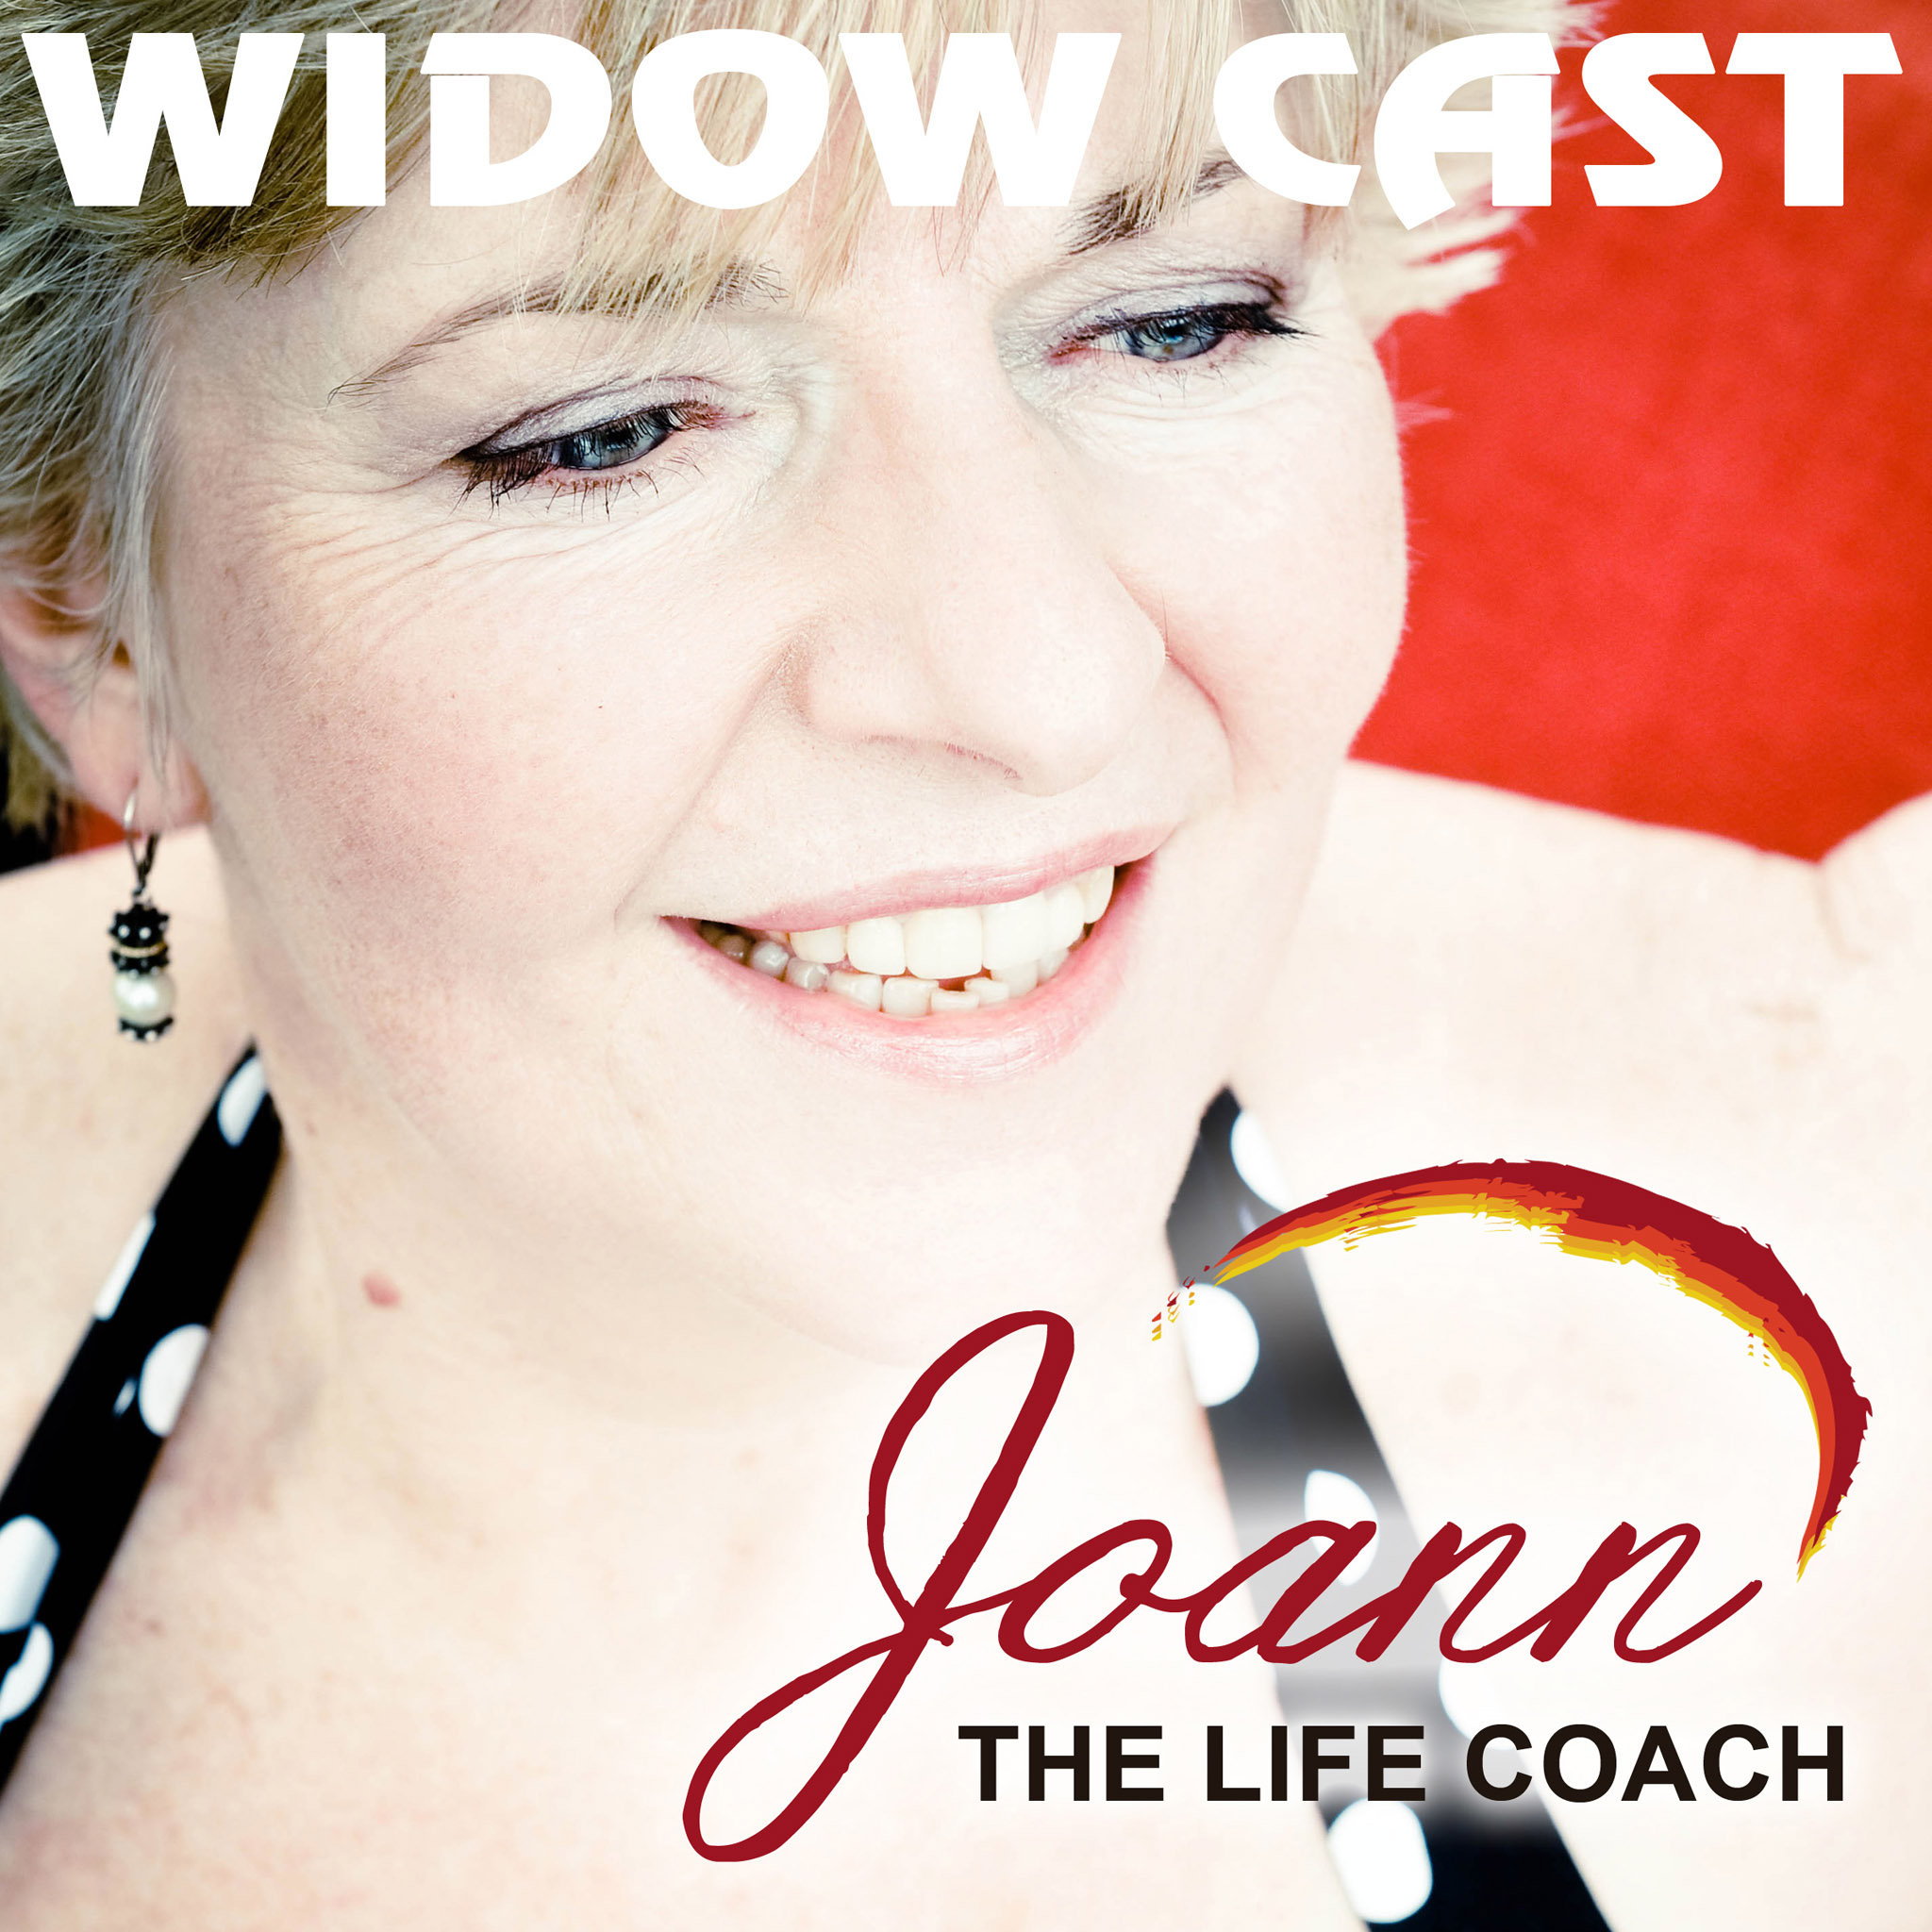 Widow Cast:  A personal story and insights on being widowed.